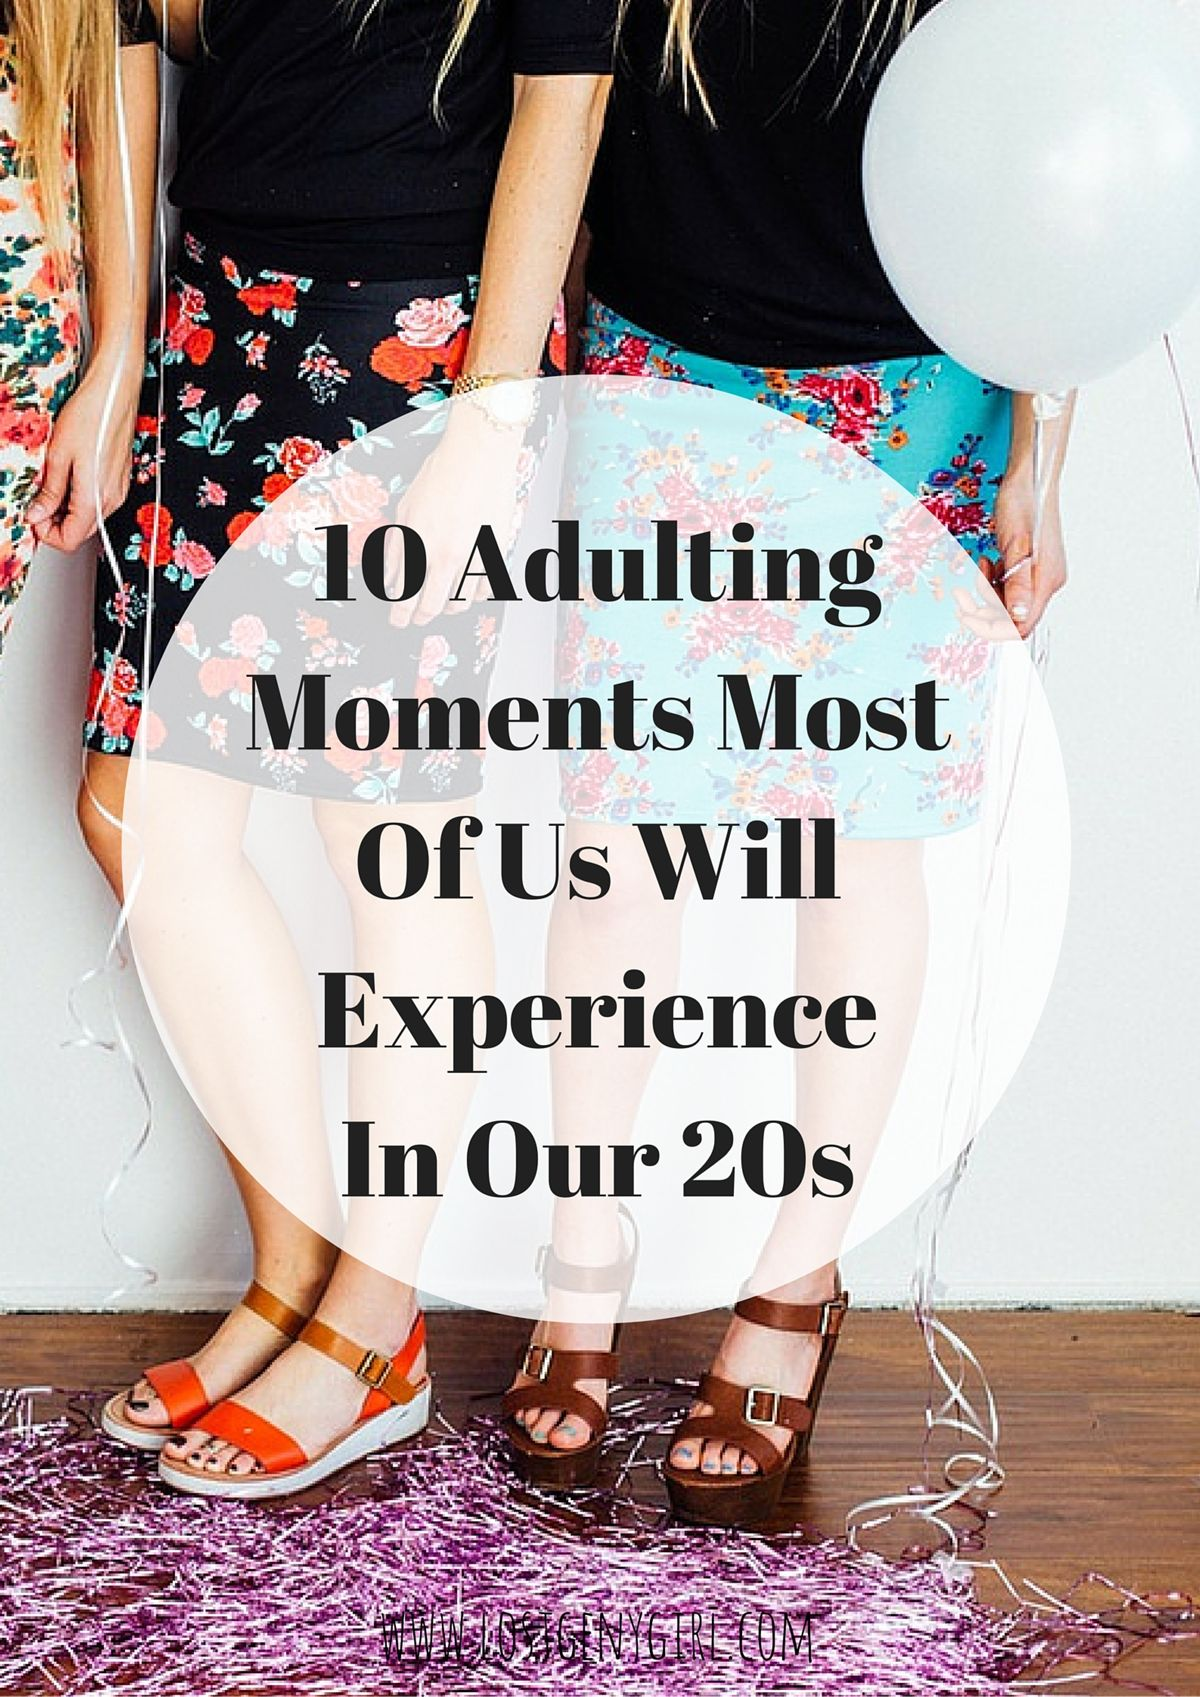 10 Adulting Moments Most Of Us Will Experience In Our Twenties